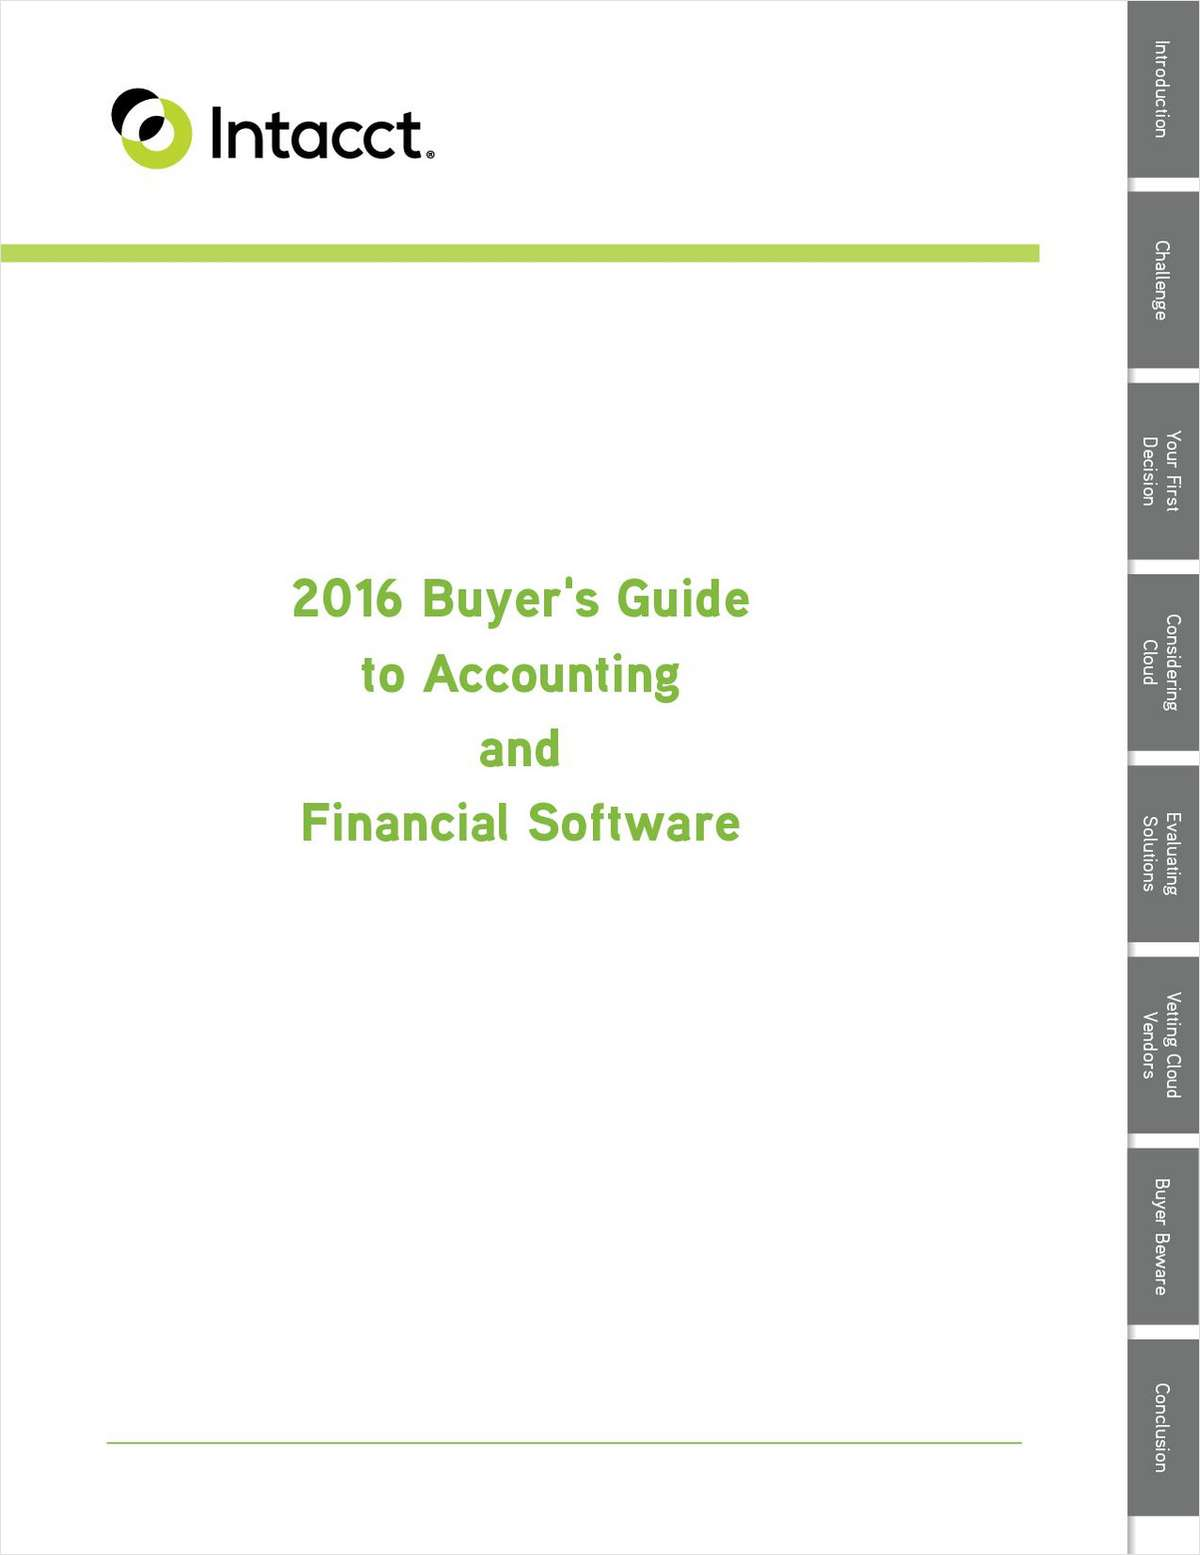 2016 Buyer's Guide to Accounting and Financial Software